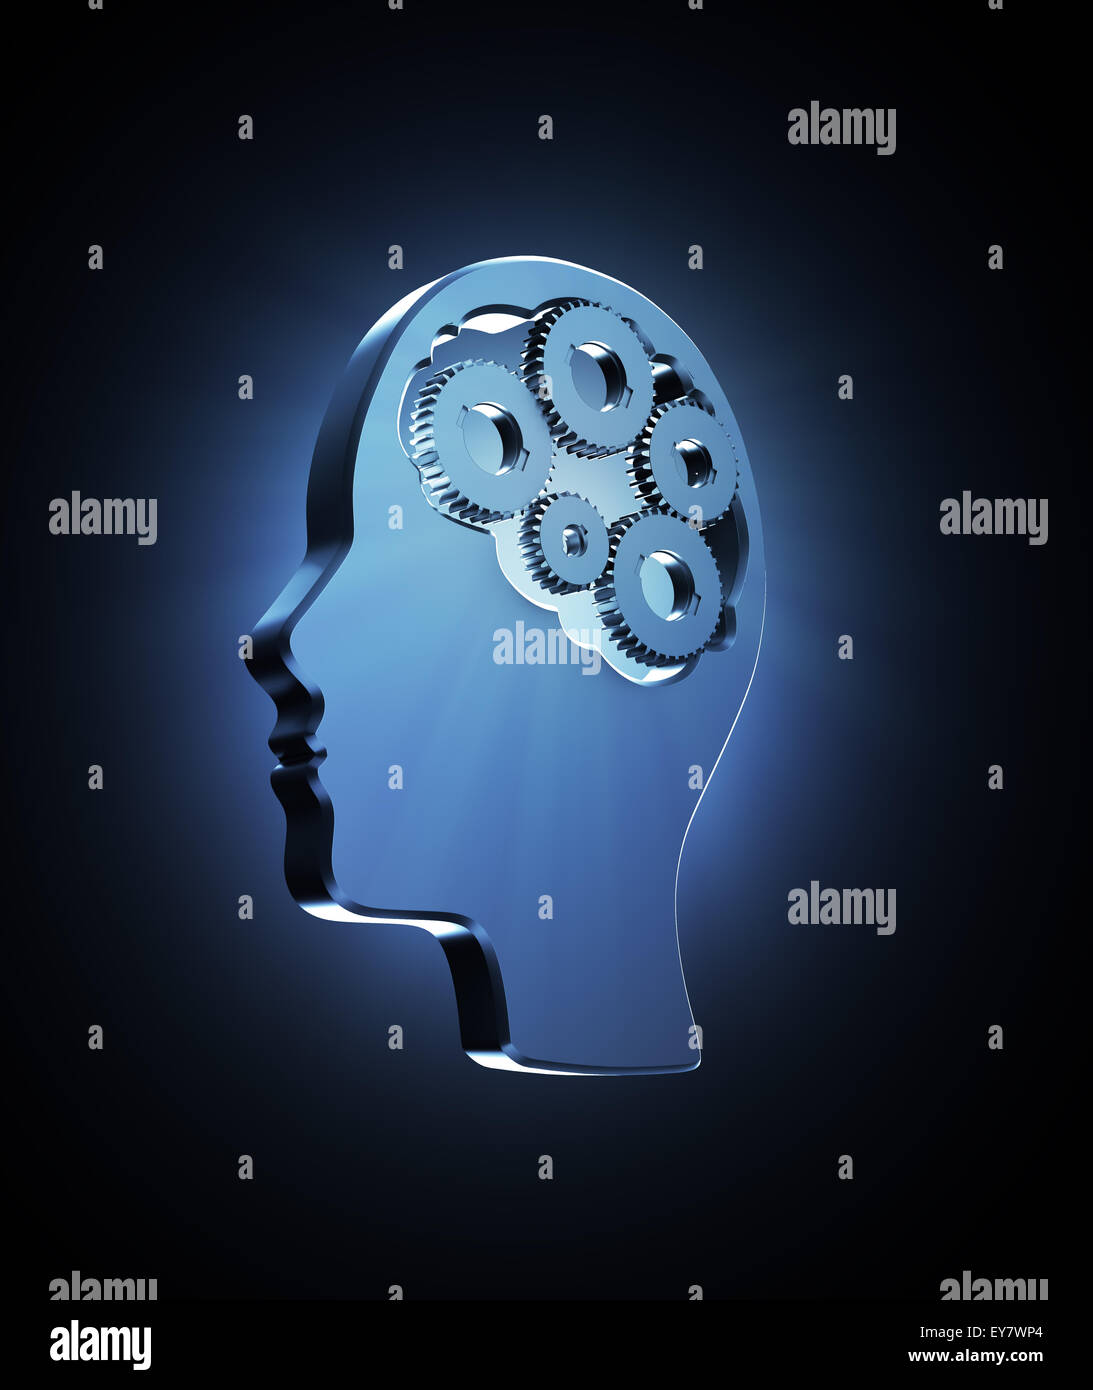 Cogs inside a human head outline - memory and cognitive functions concept illustration - Stock Image